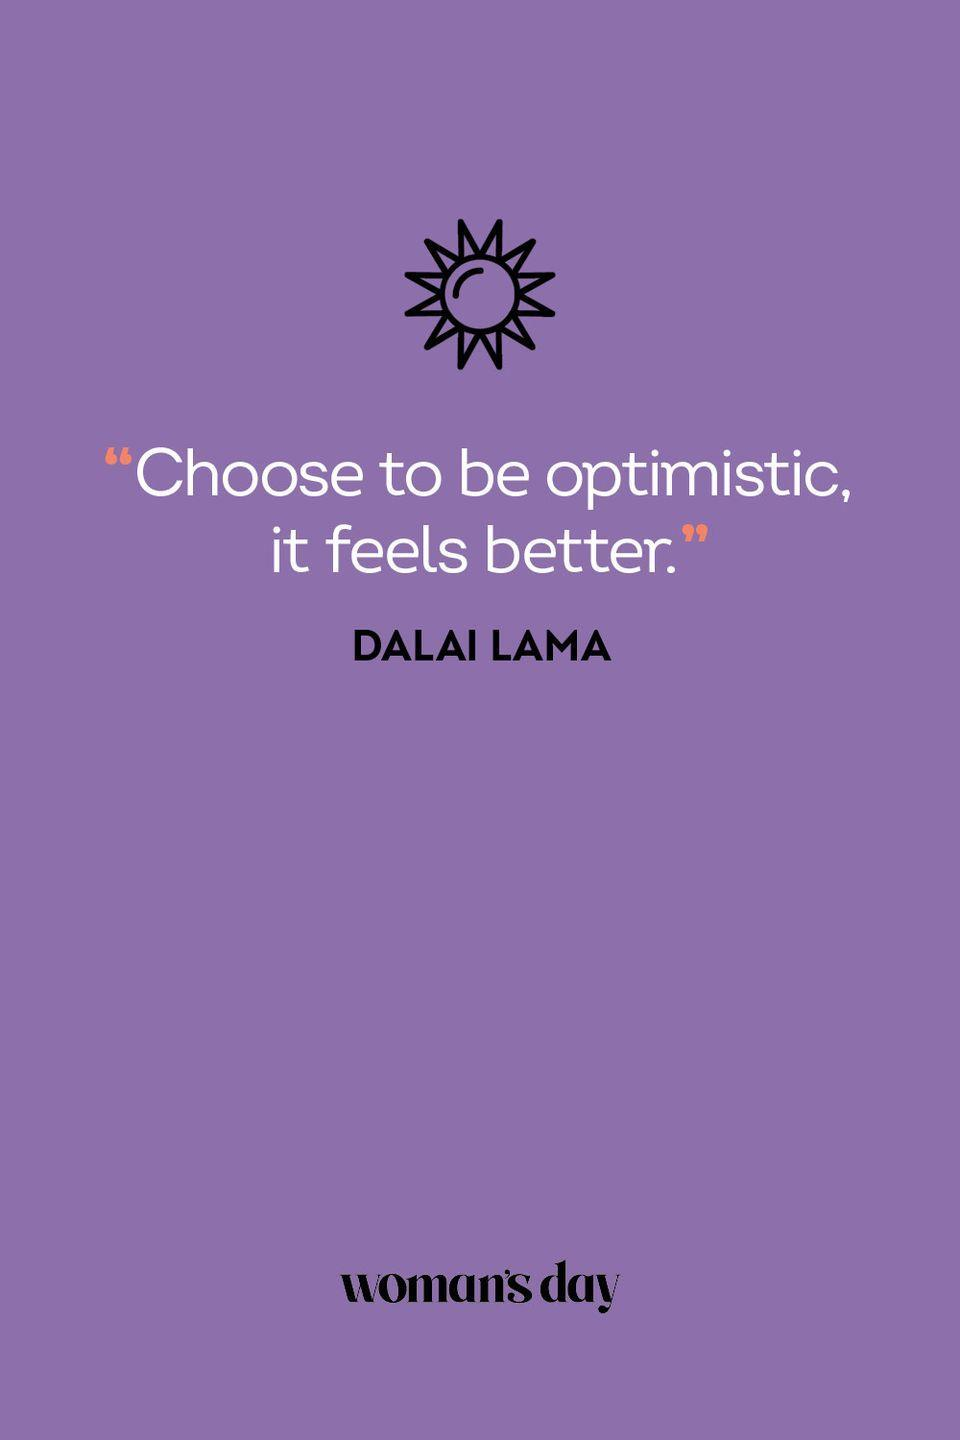 <p>Choose to be optimistic, it feels better.</p>